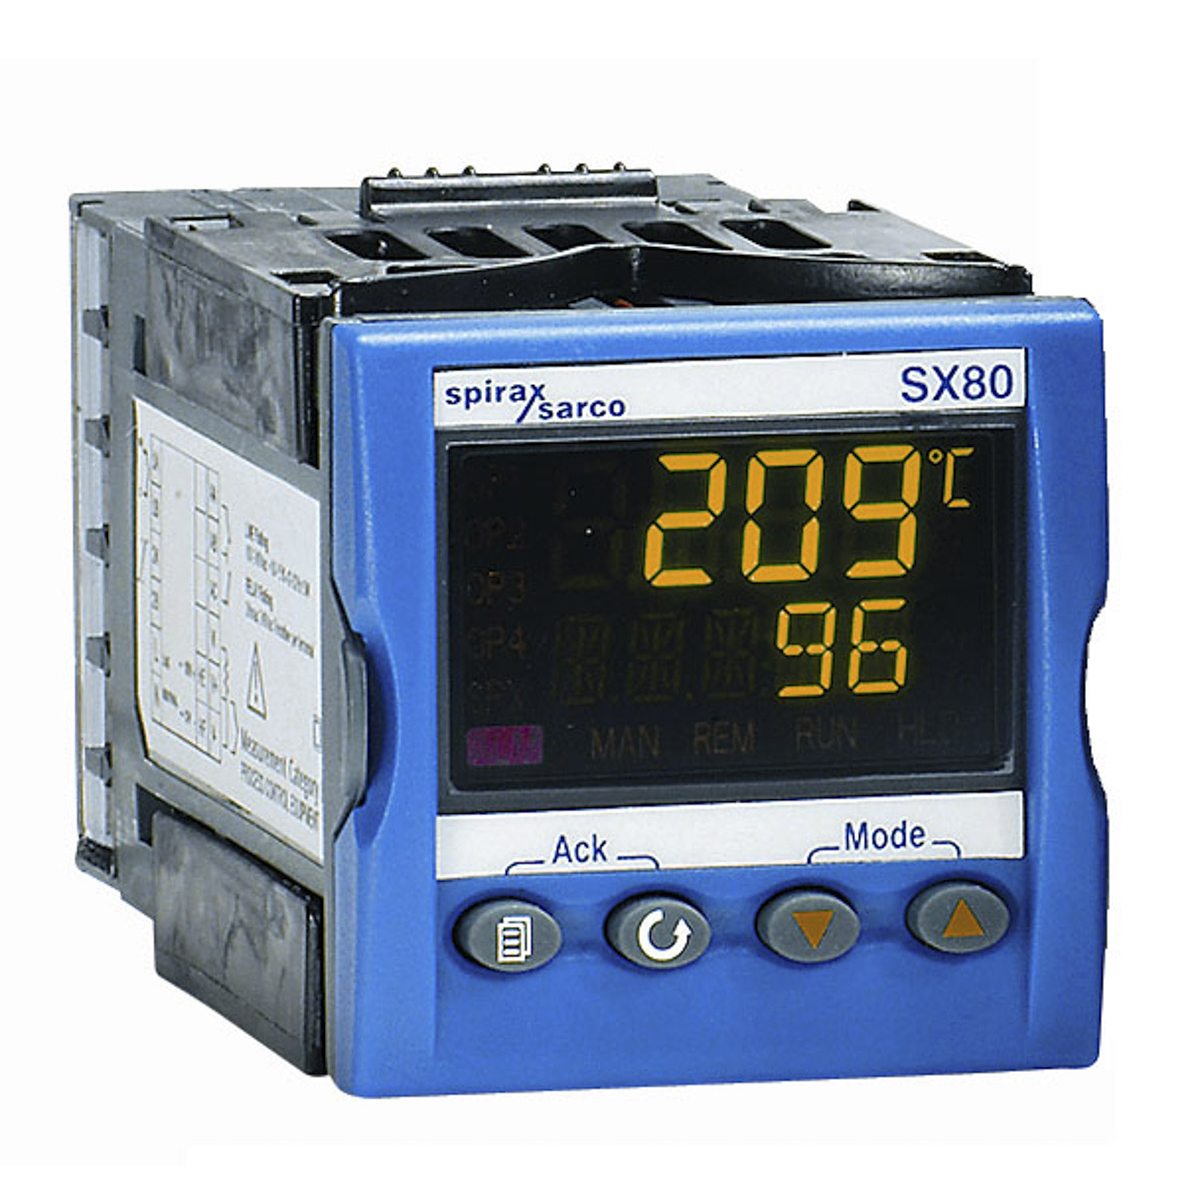 SPIRAX SARCO SX80 PID Process Controllers